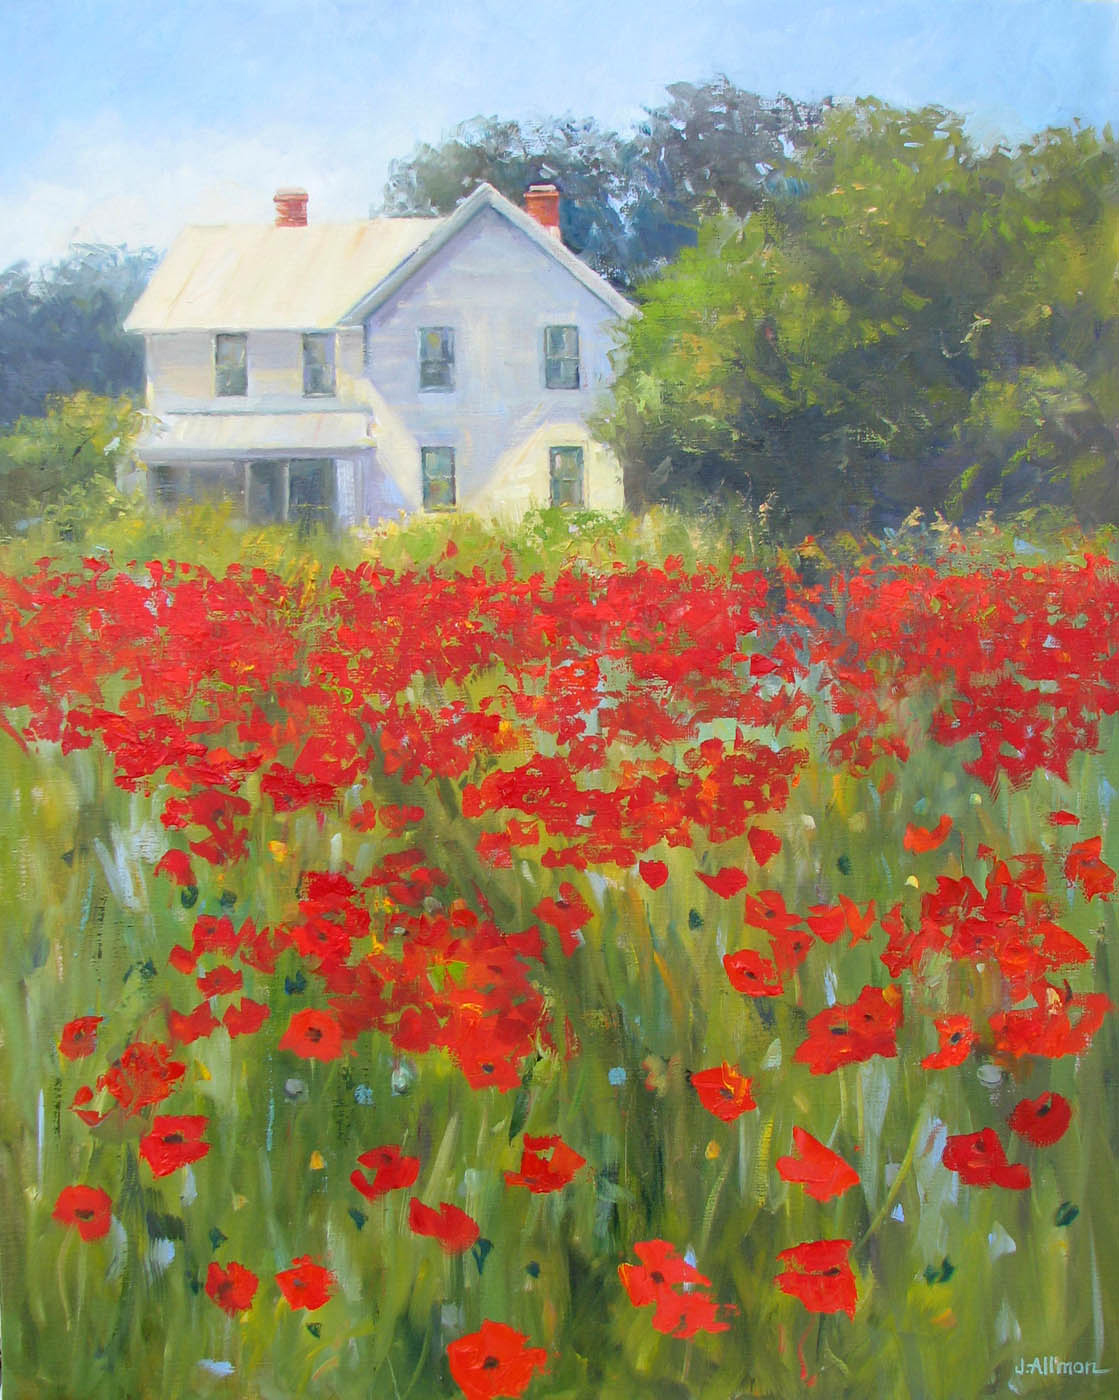 red_poppies_in_a_field21